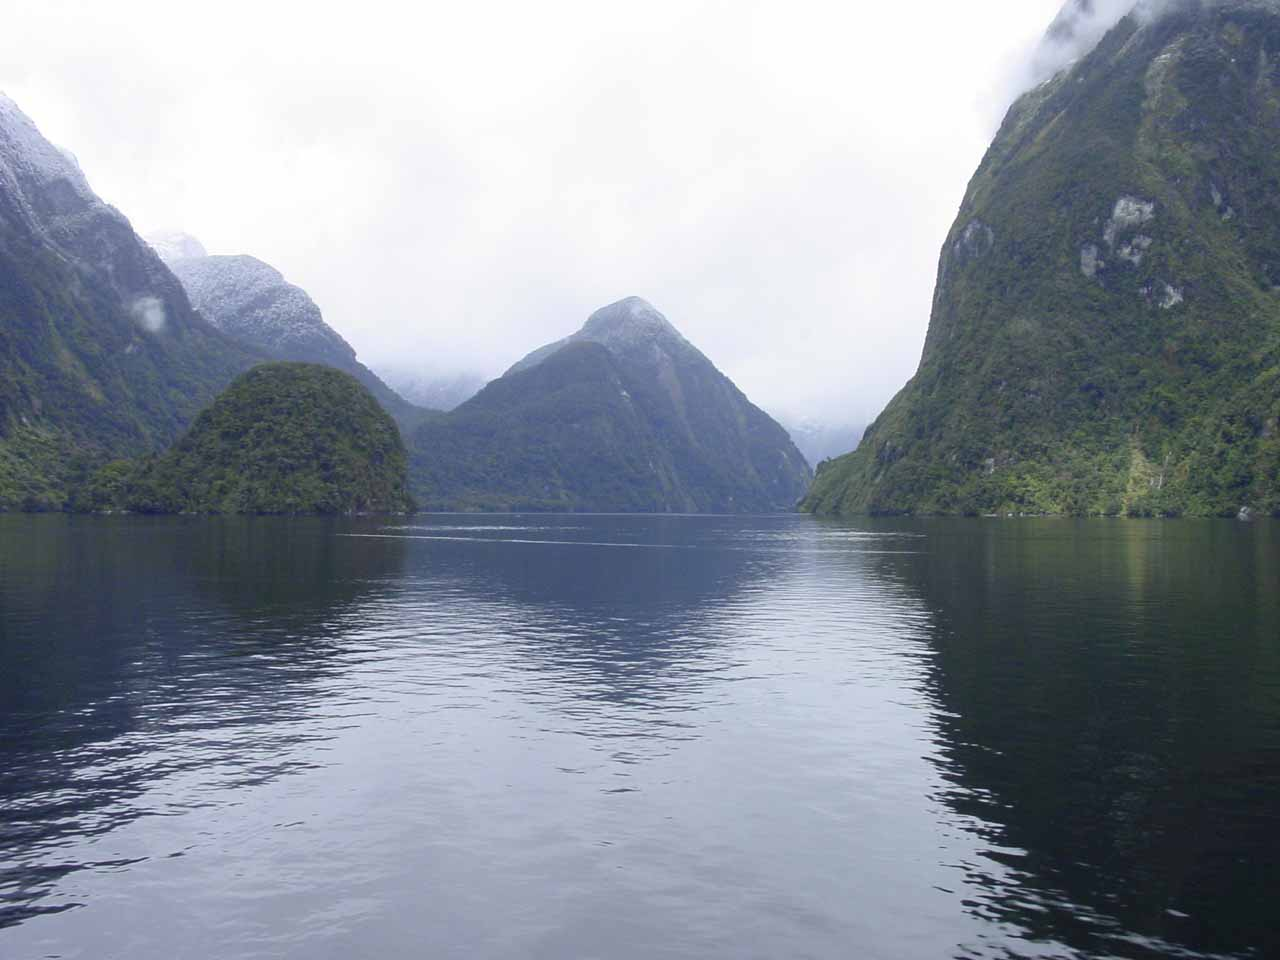 Cruising about on the Doubtful Sound